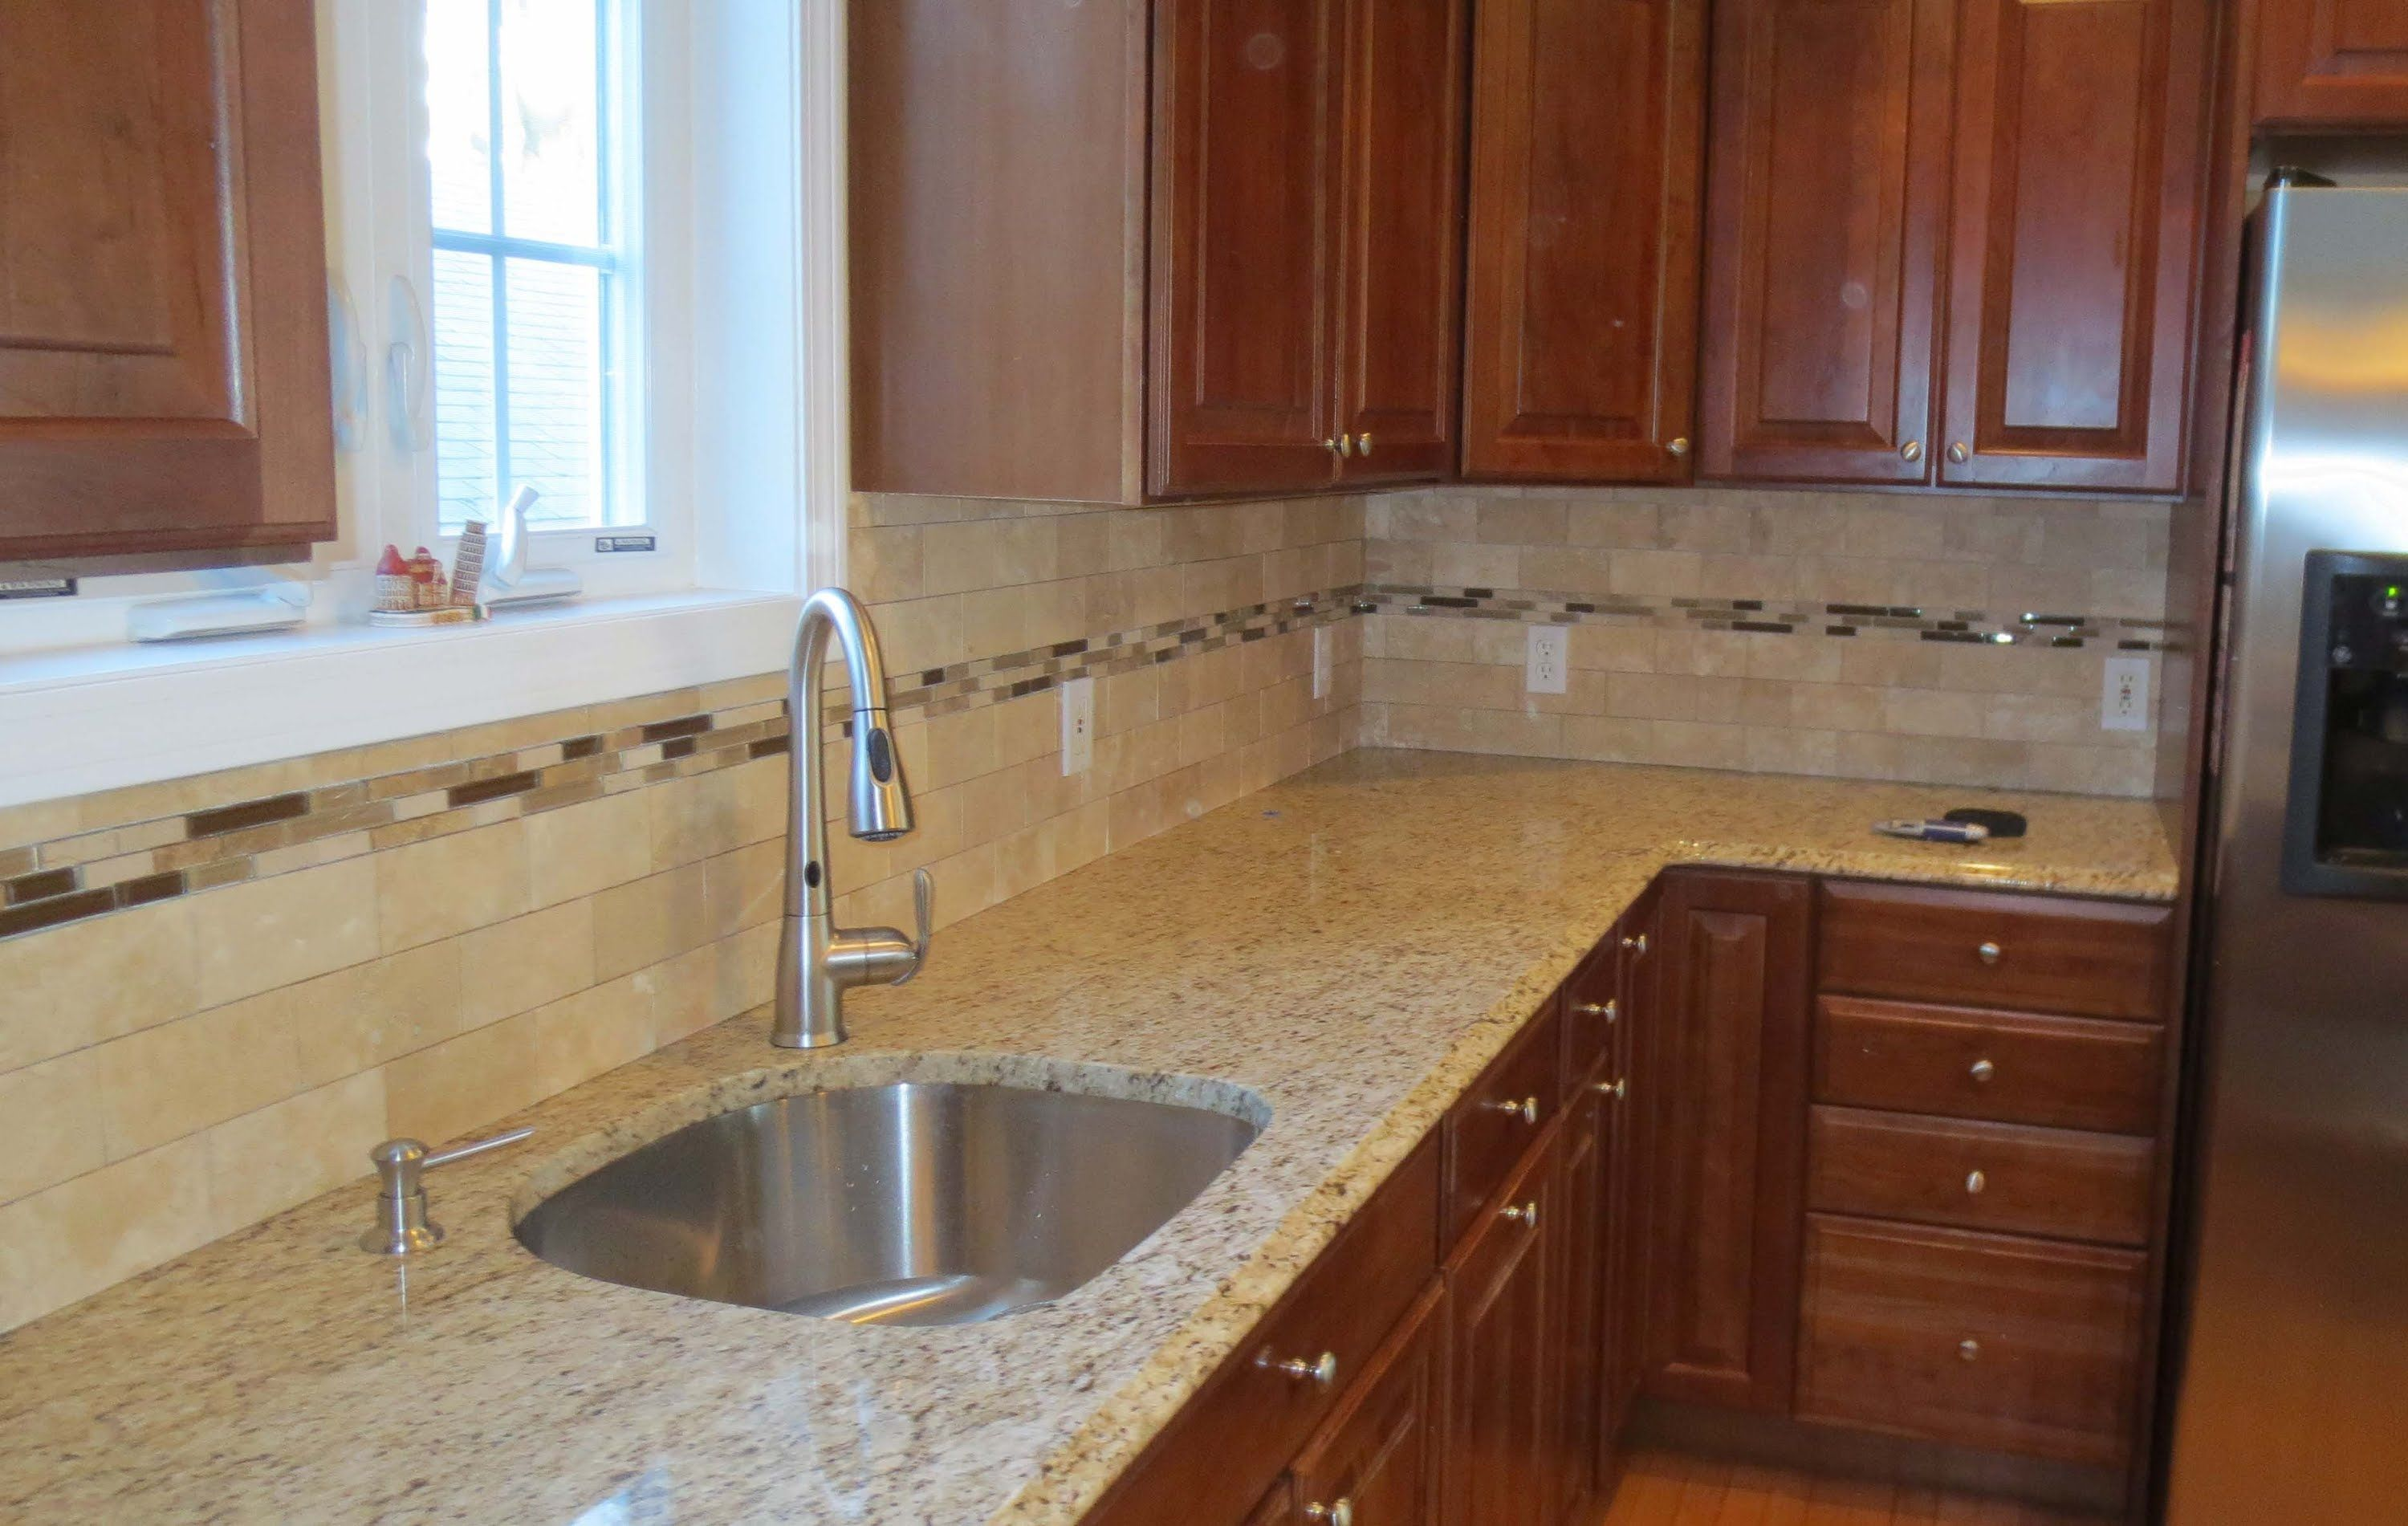 Travertine subway tile kitchen backsplash with a glass border